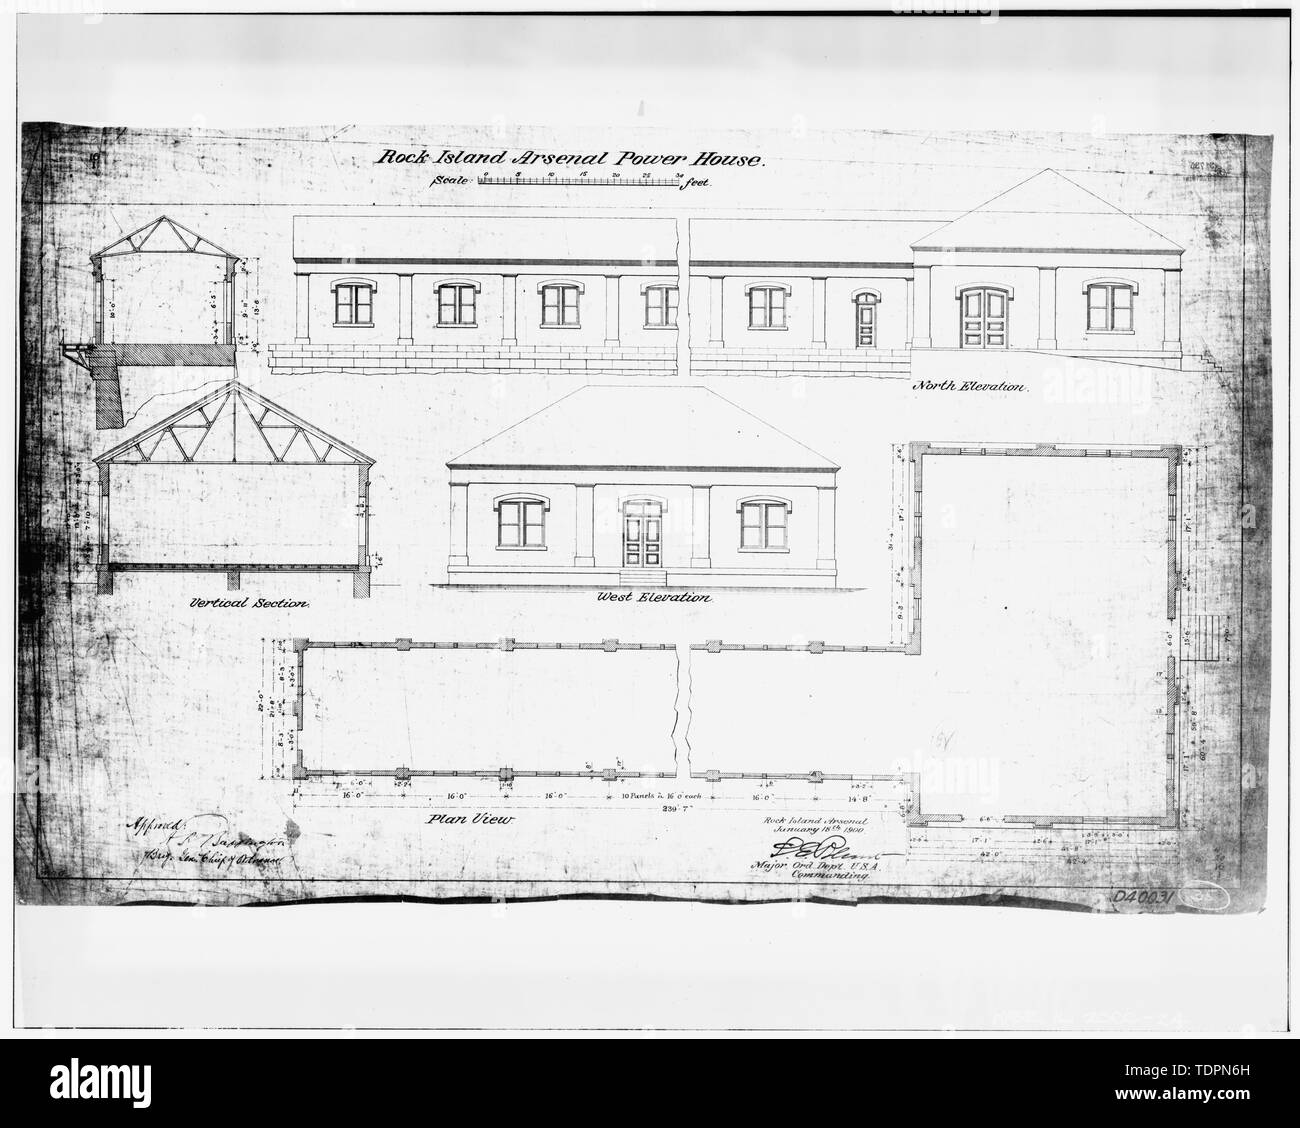 Photograph of line drawing in possession of Engineering Plans and Services Division, Rock Island Arsenal. ELEVATION, PLAN, AND SECTION, 1900. - Rock Island Arsenal, Building No. 160, Sylvan Drive, Rock Island, Rock Island County, IL; Central Engineering Company of Davenport - Stock Image